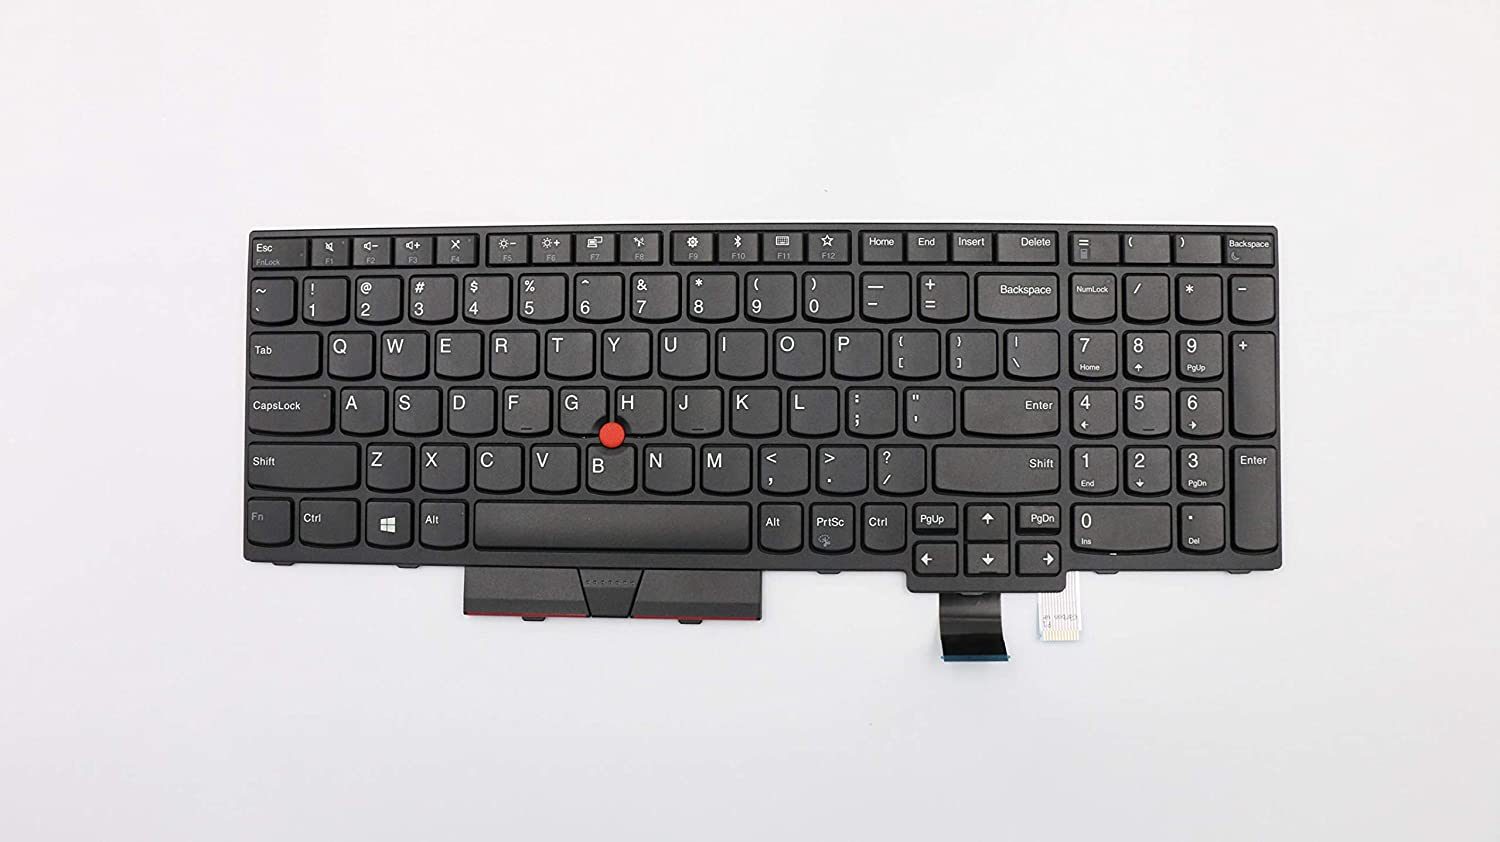 TellusRem Keyboard for Lenovo Thinkpad T570 T580 P51s P52s (No Backlit) US Layout, New, Never Used